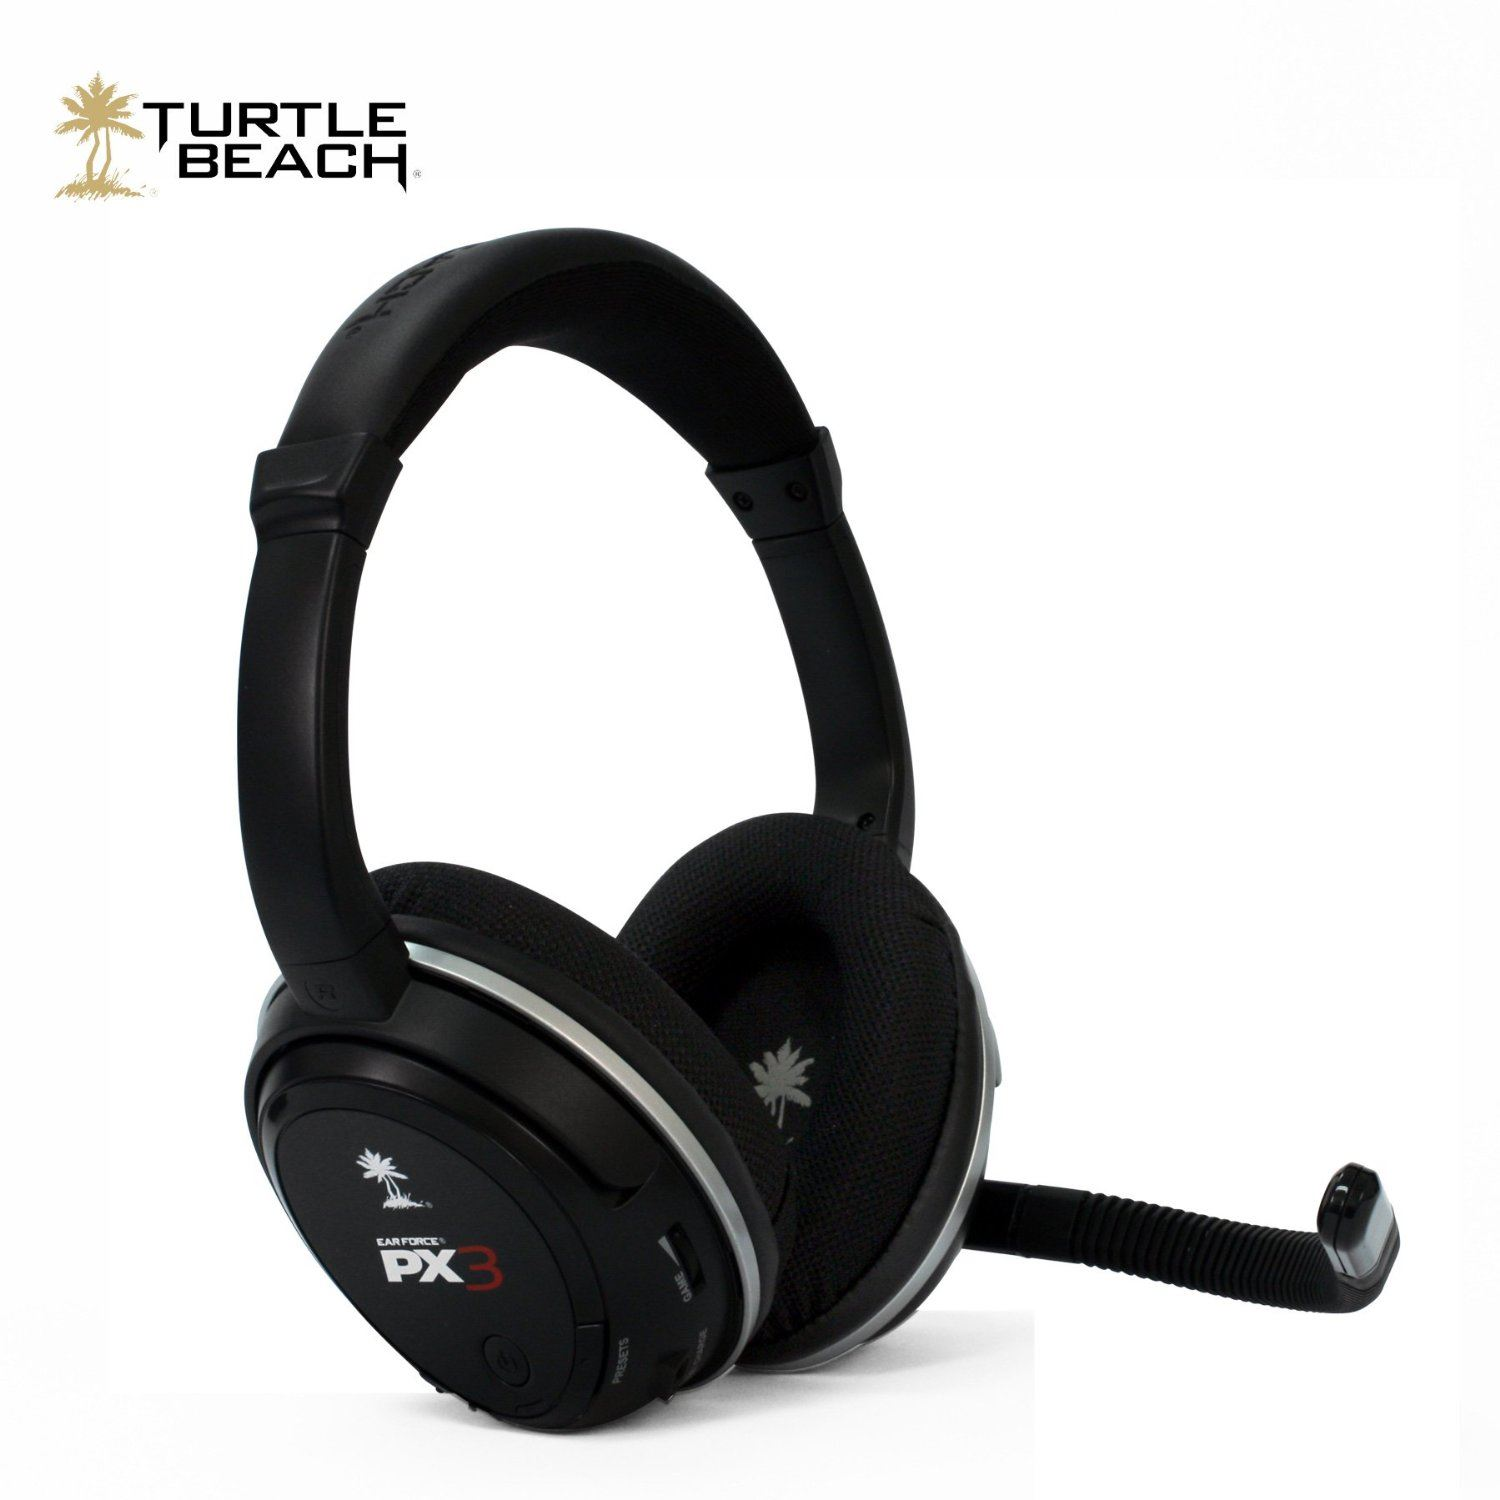 turtle beach px3 universal wireless gaming headset with microphone ps3 xbox ebay. Black Bedroom Furniture Sets. Home Design Ideas